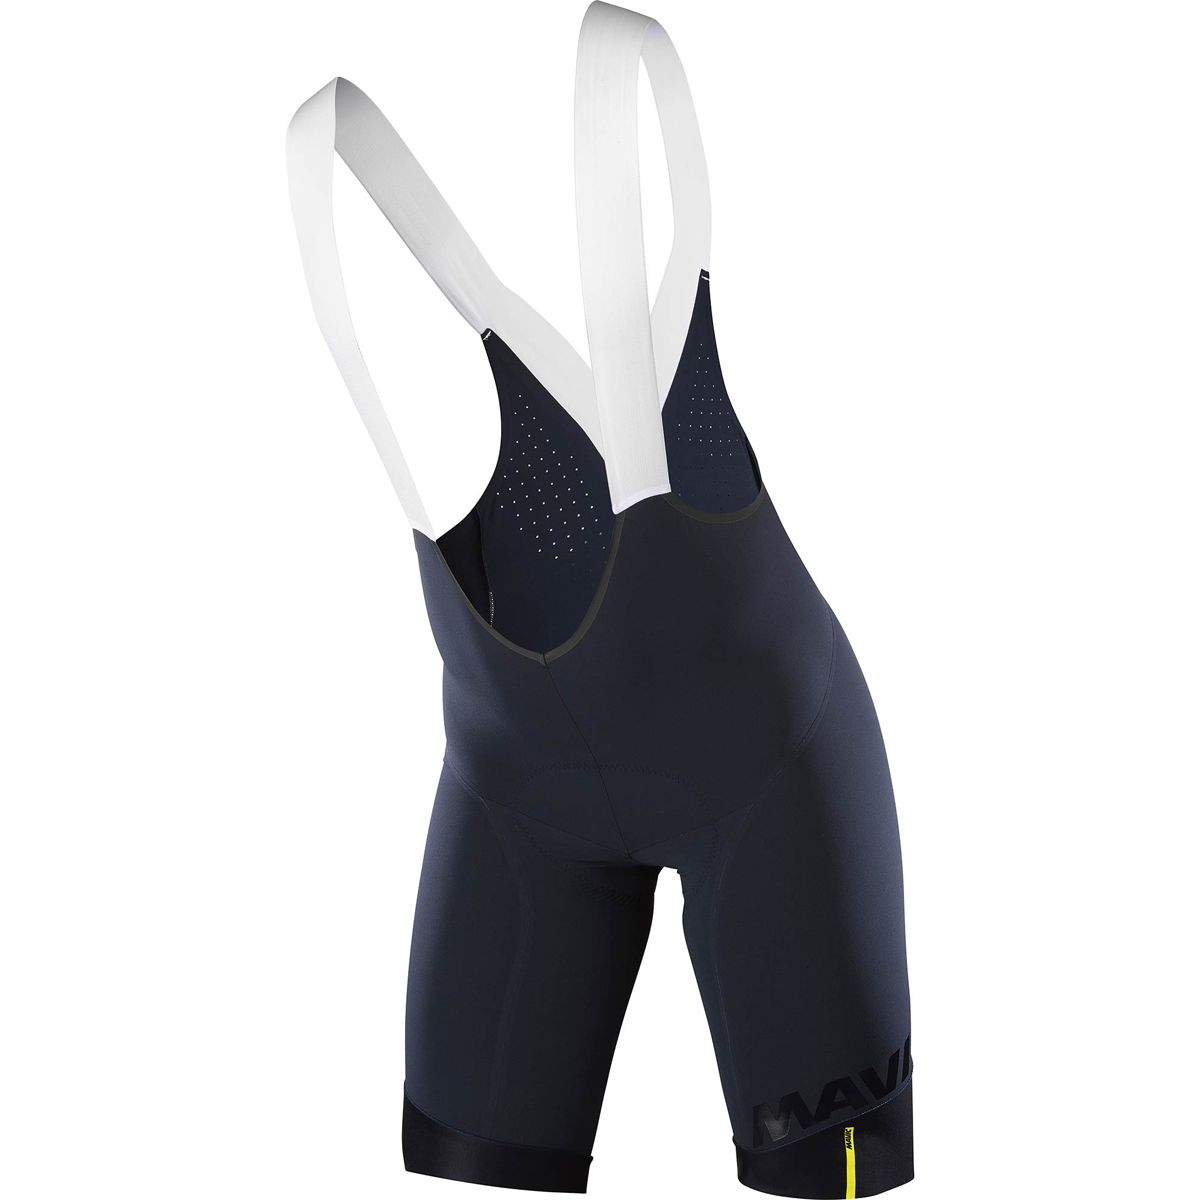 Cosmic Ultimate SL Bib Short Trägerhose